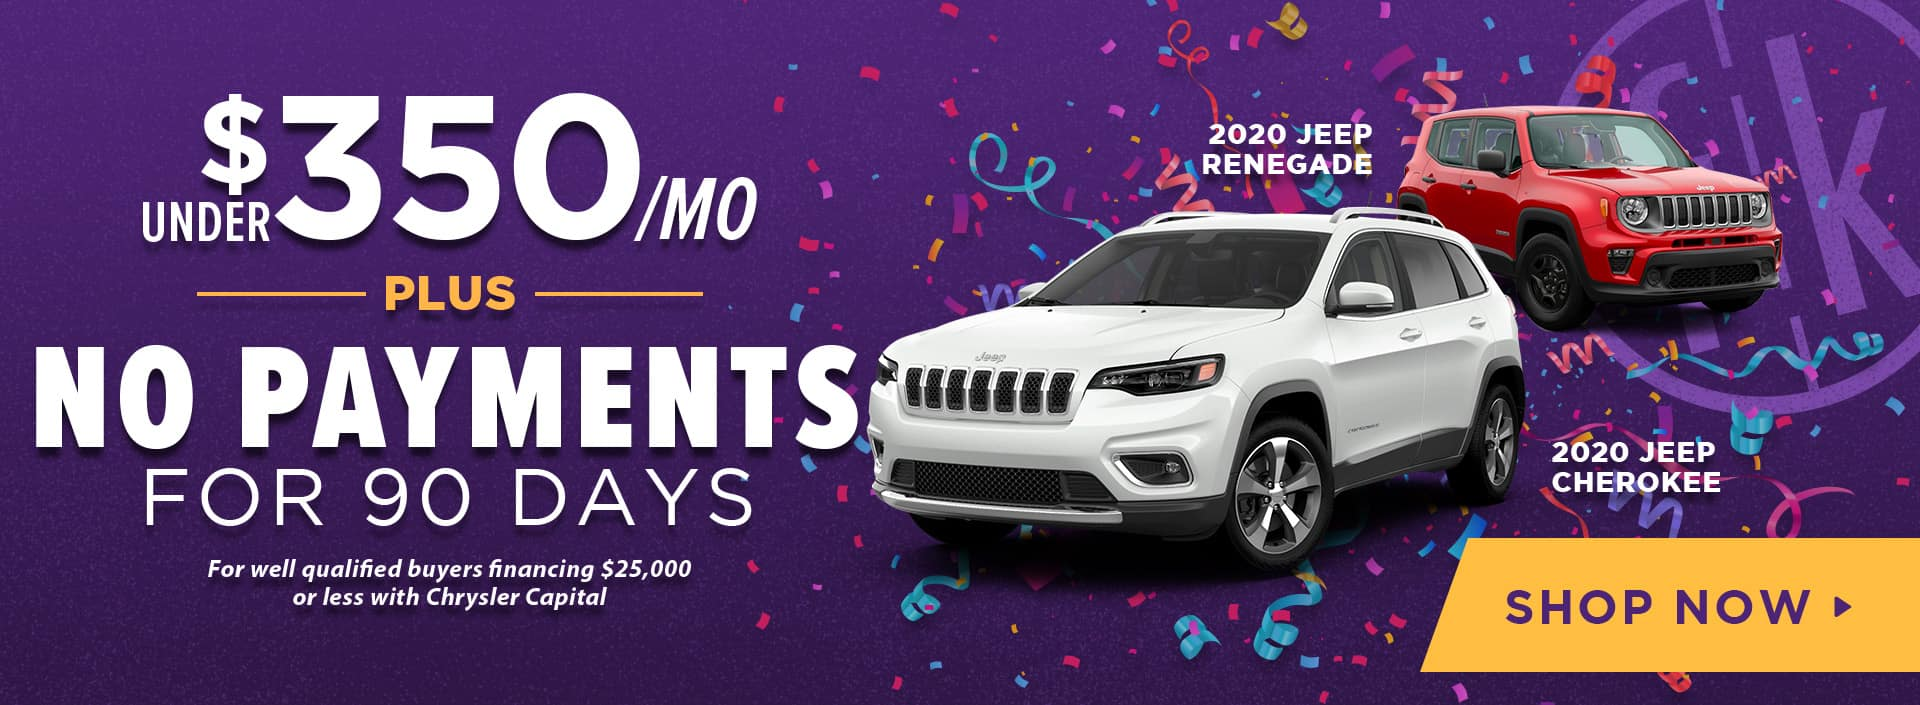 Under $350/ mo PLUS No Payments for 90 Days 2020 Jeep Renegade & Cherokee